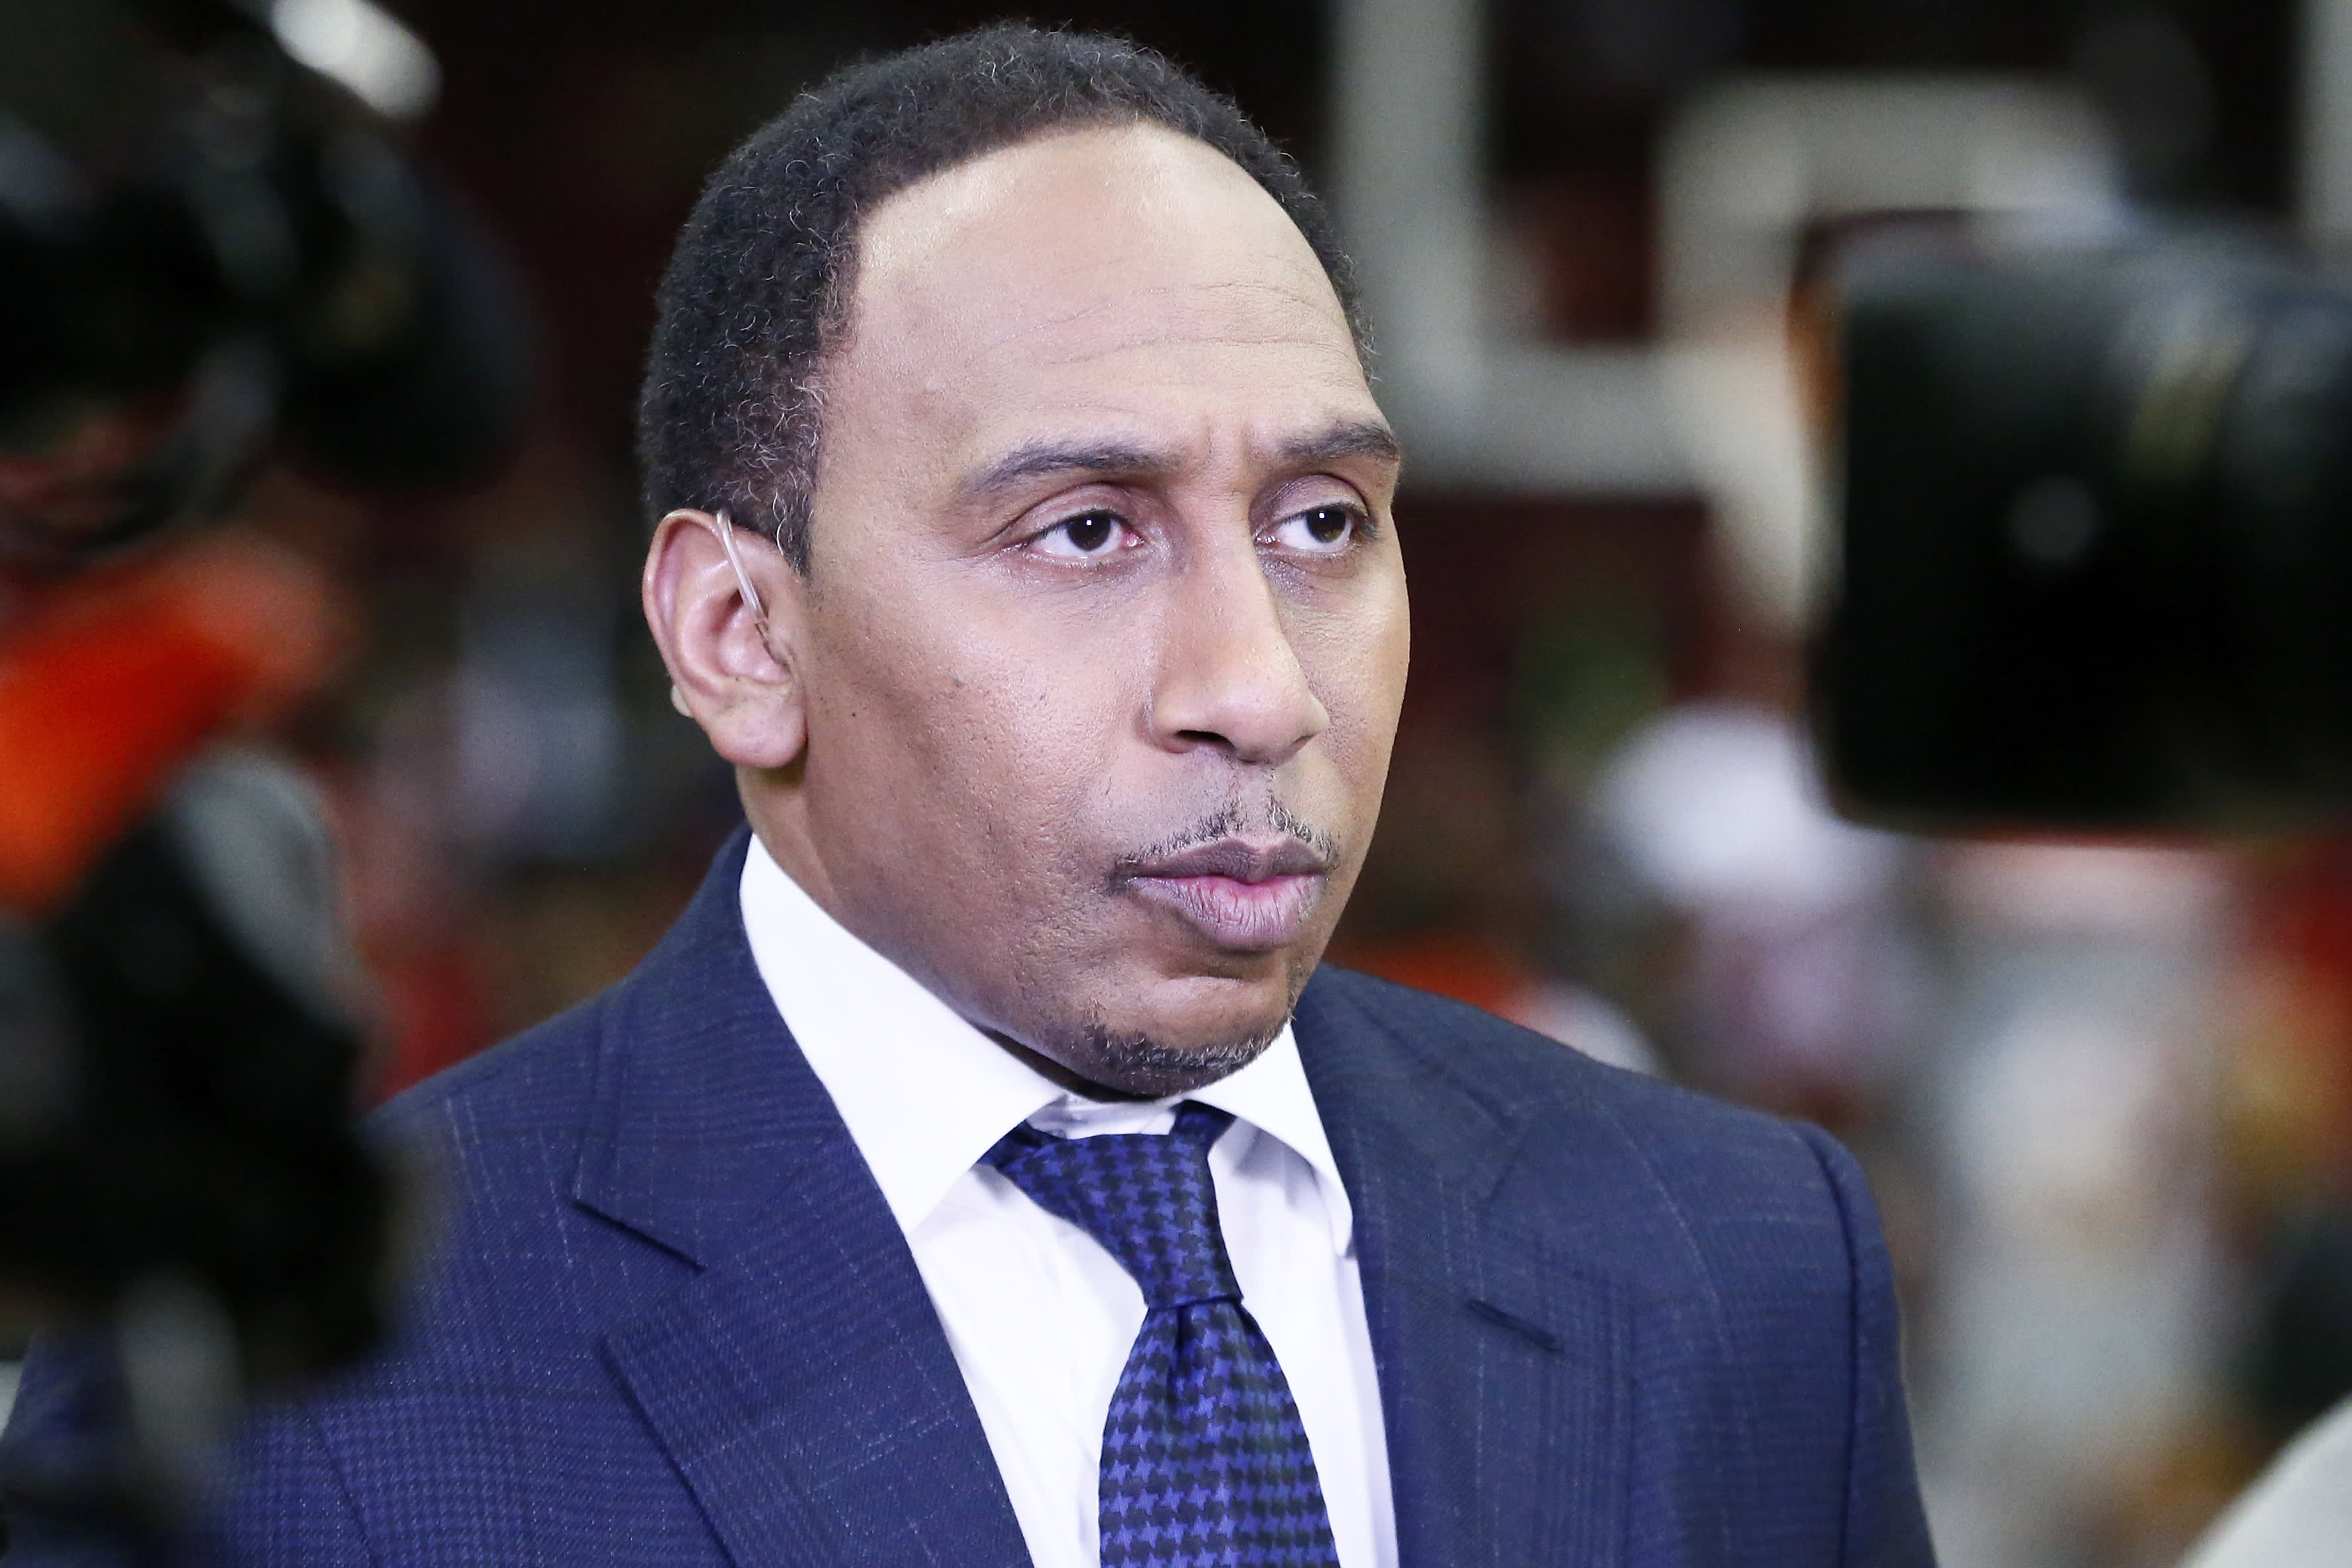 ESPN's Stephen A. Smith, who makes $8 million a year, reveals his dogmatic work ethic and uncompromising view of authority